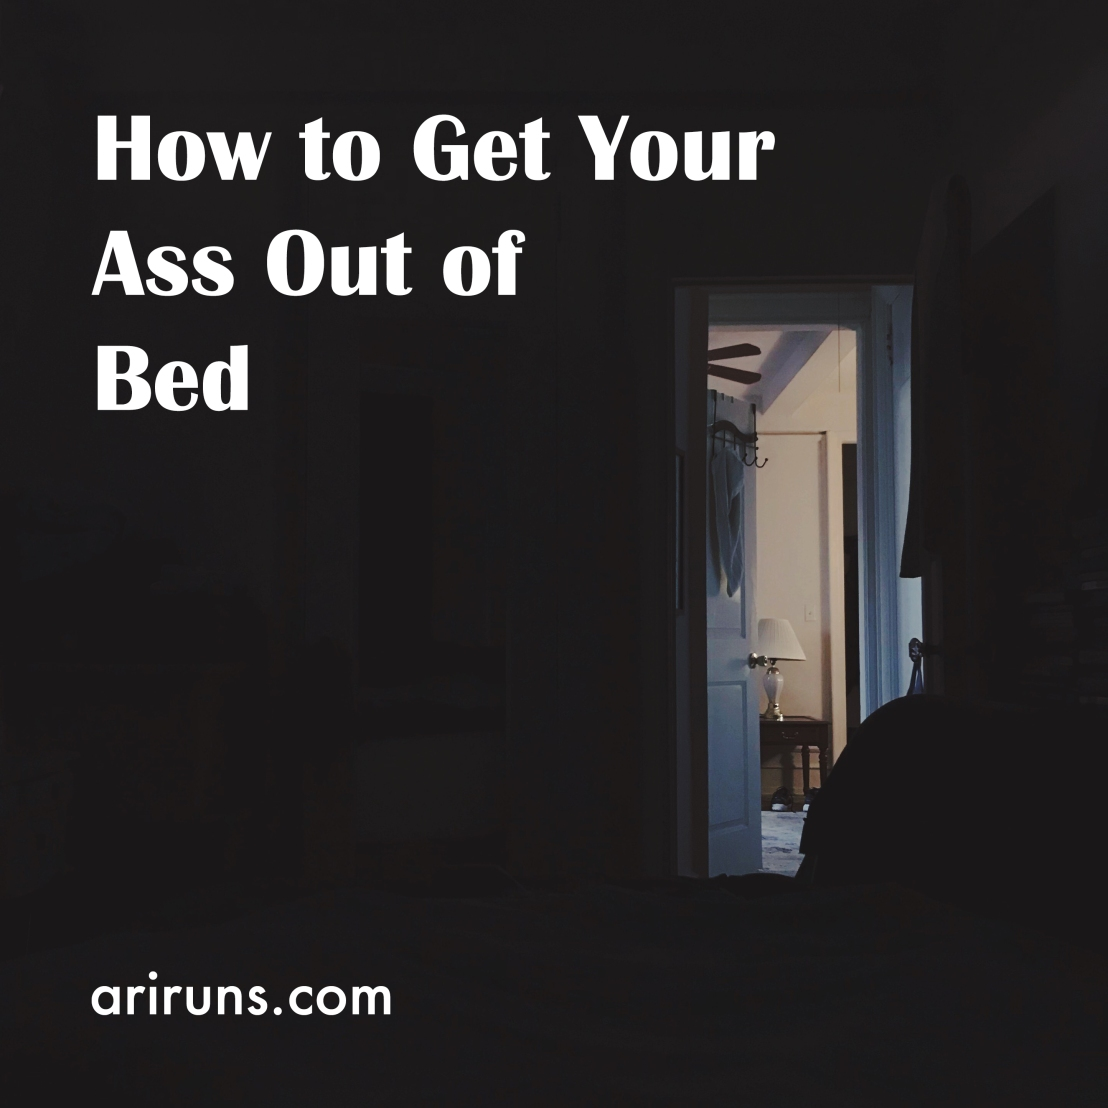 img_1686_how to get your ass out of bed